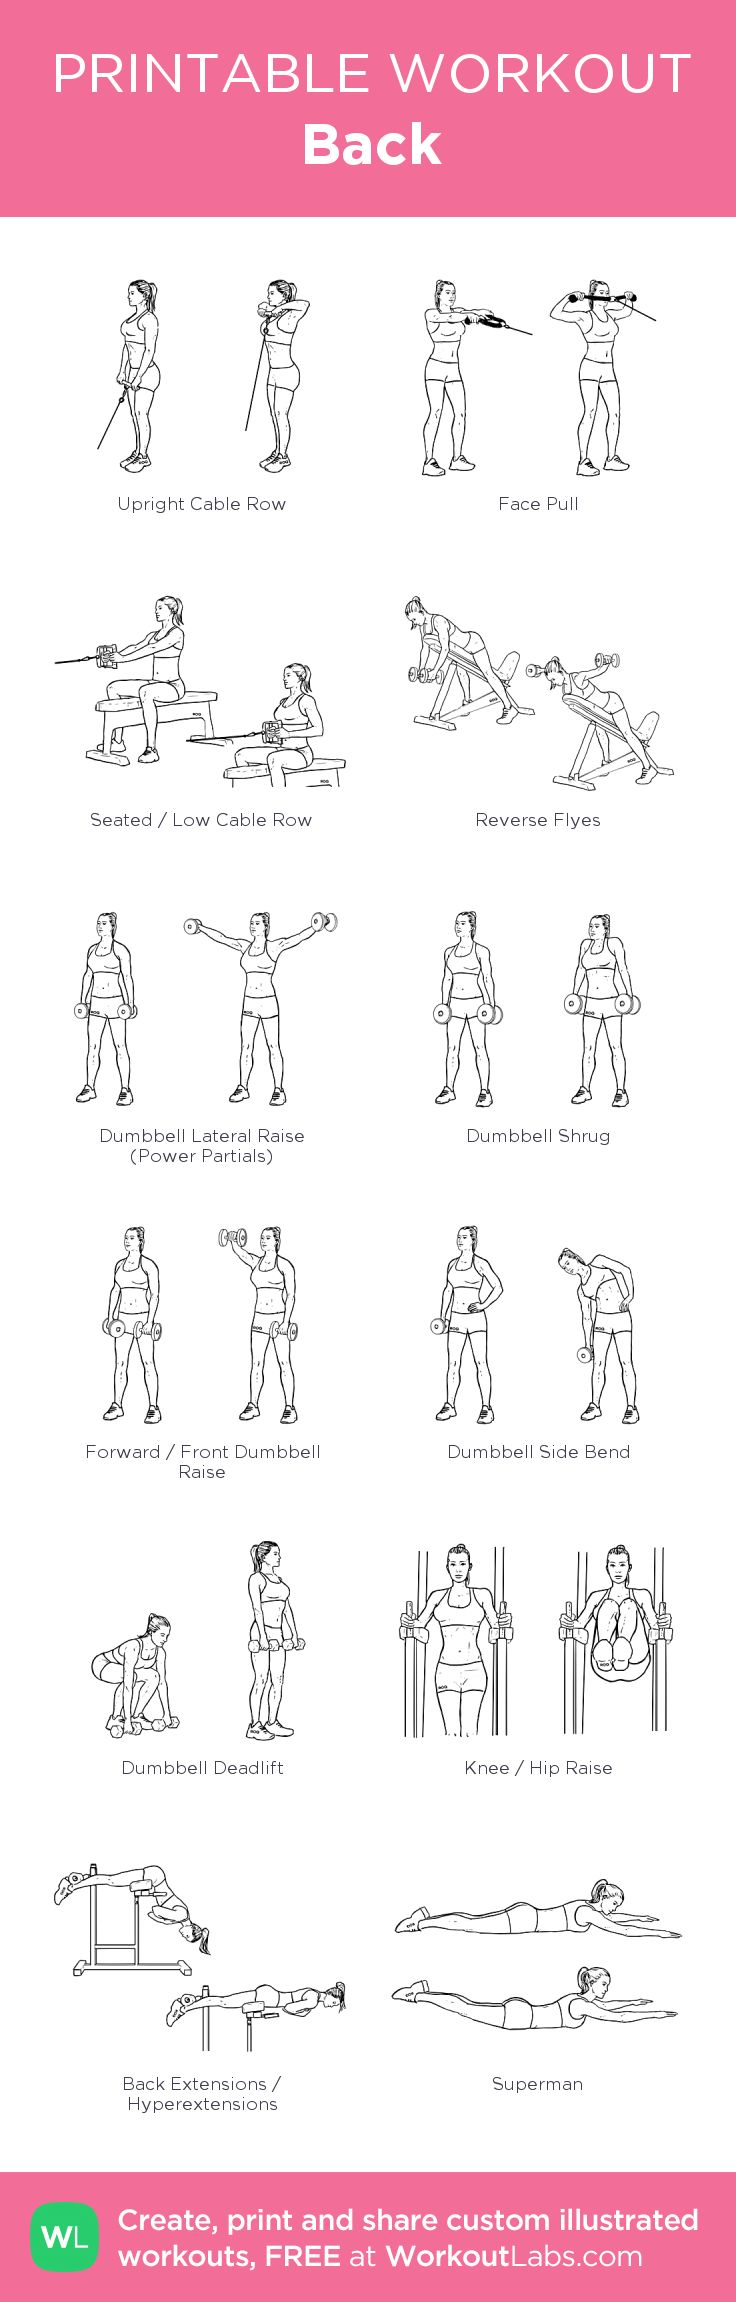 Back: my custom printable workout by @WorkoutLabs #workoutlabs #customworkout